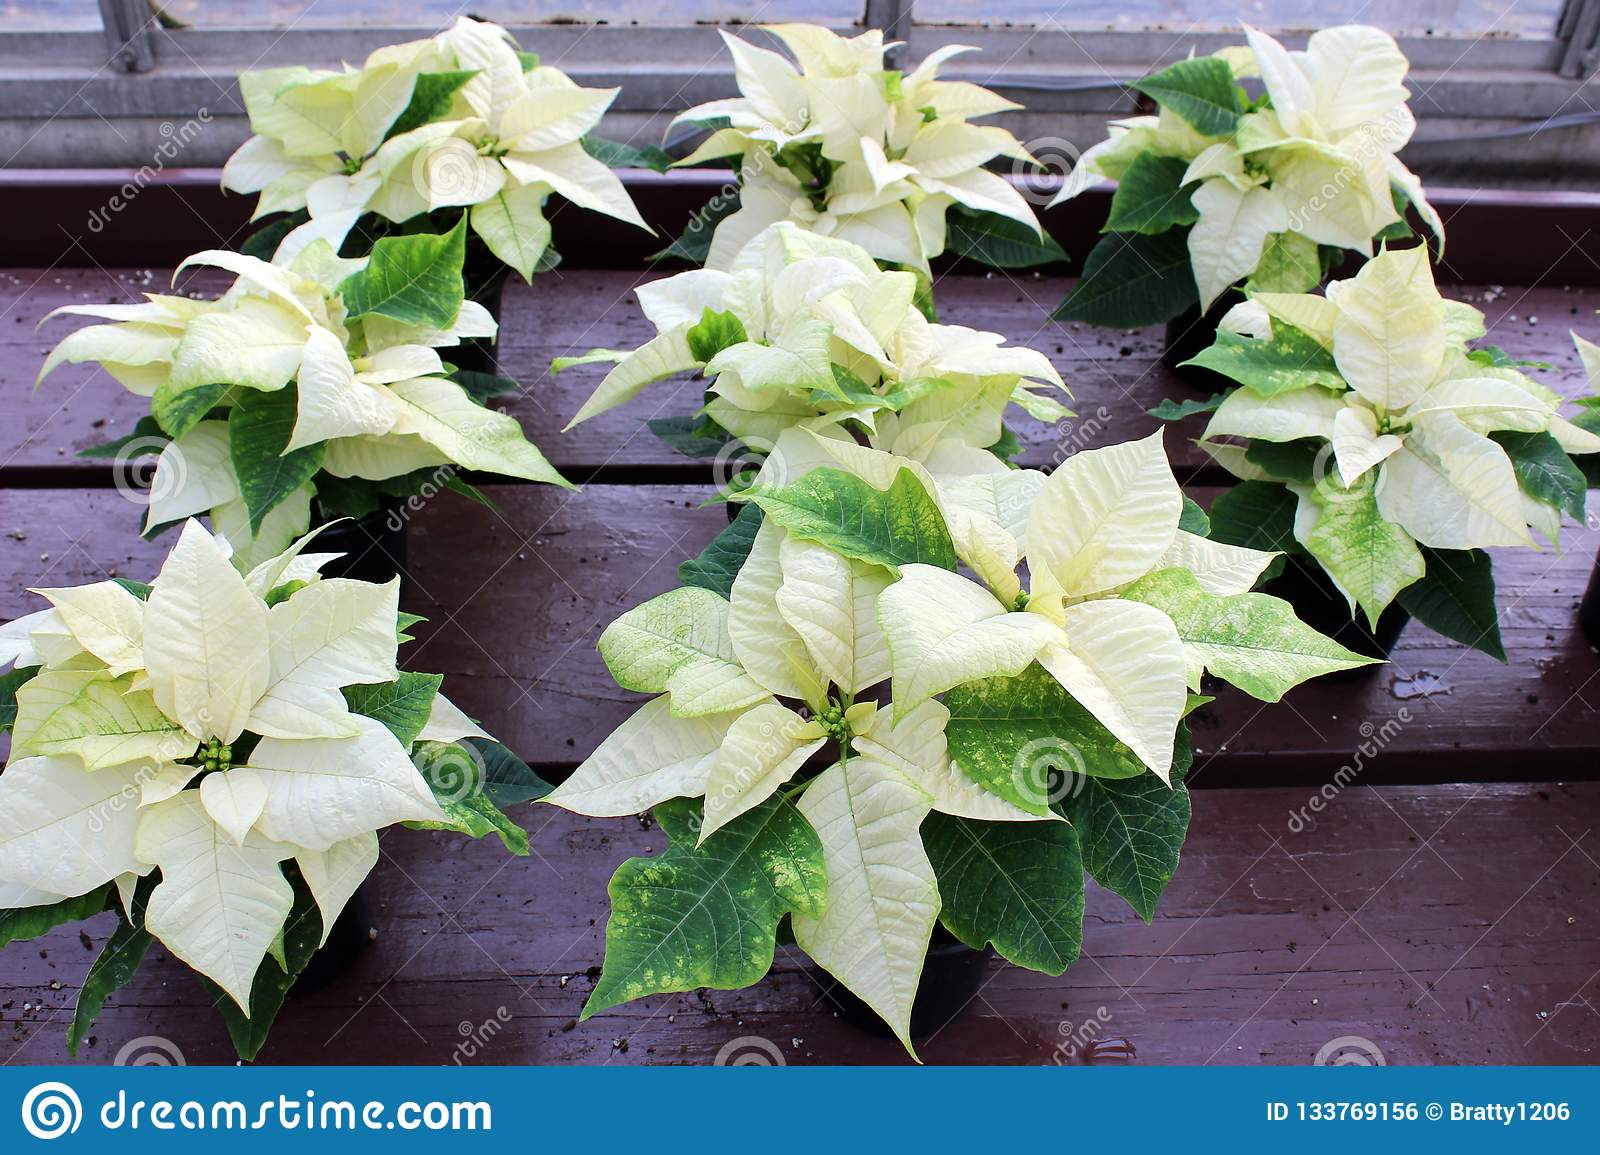 Several Stunning Potted Poinsettia Plants In The Bright White